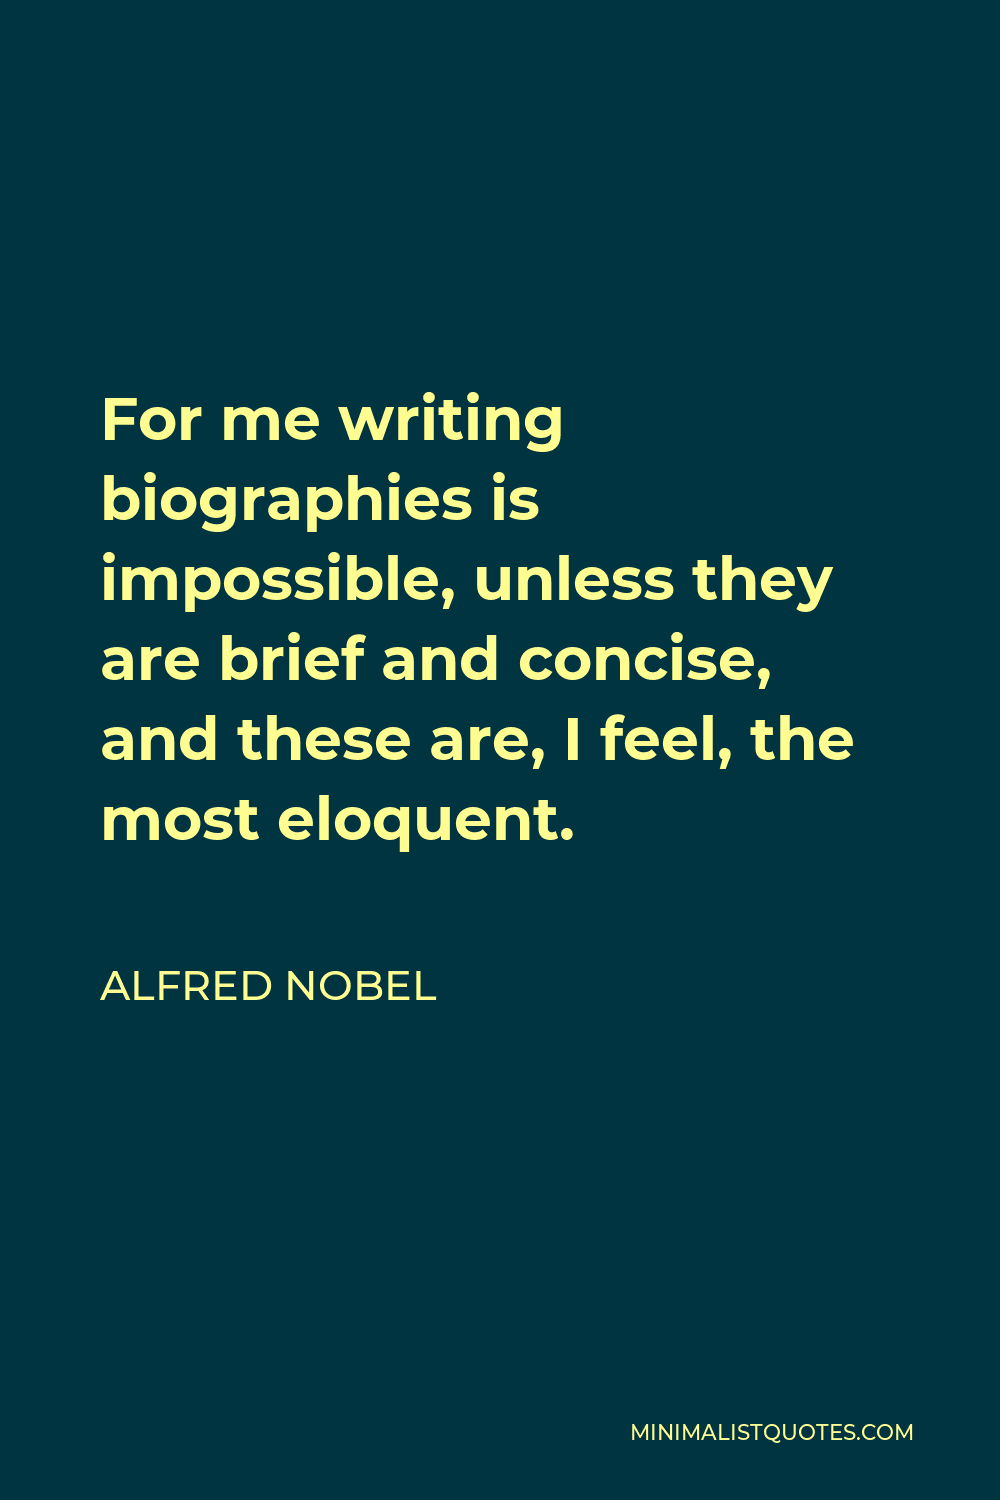 Alfred Nobel Quote - For me writing biographies is impossible, unless they are brief and concise, and these are, I feel, the most eloquent.